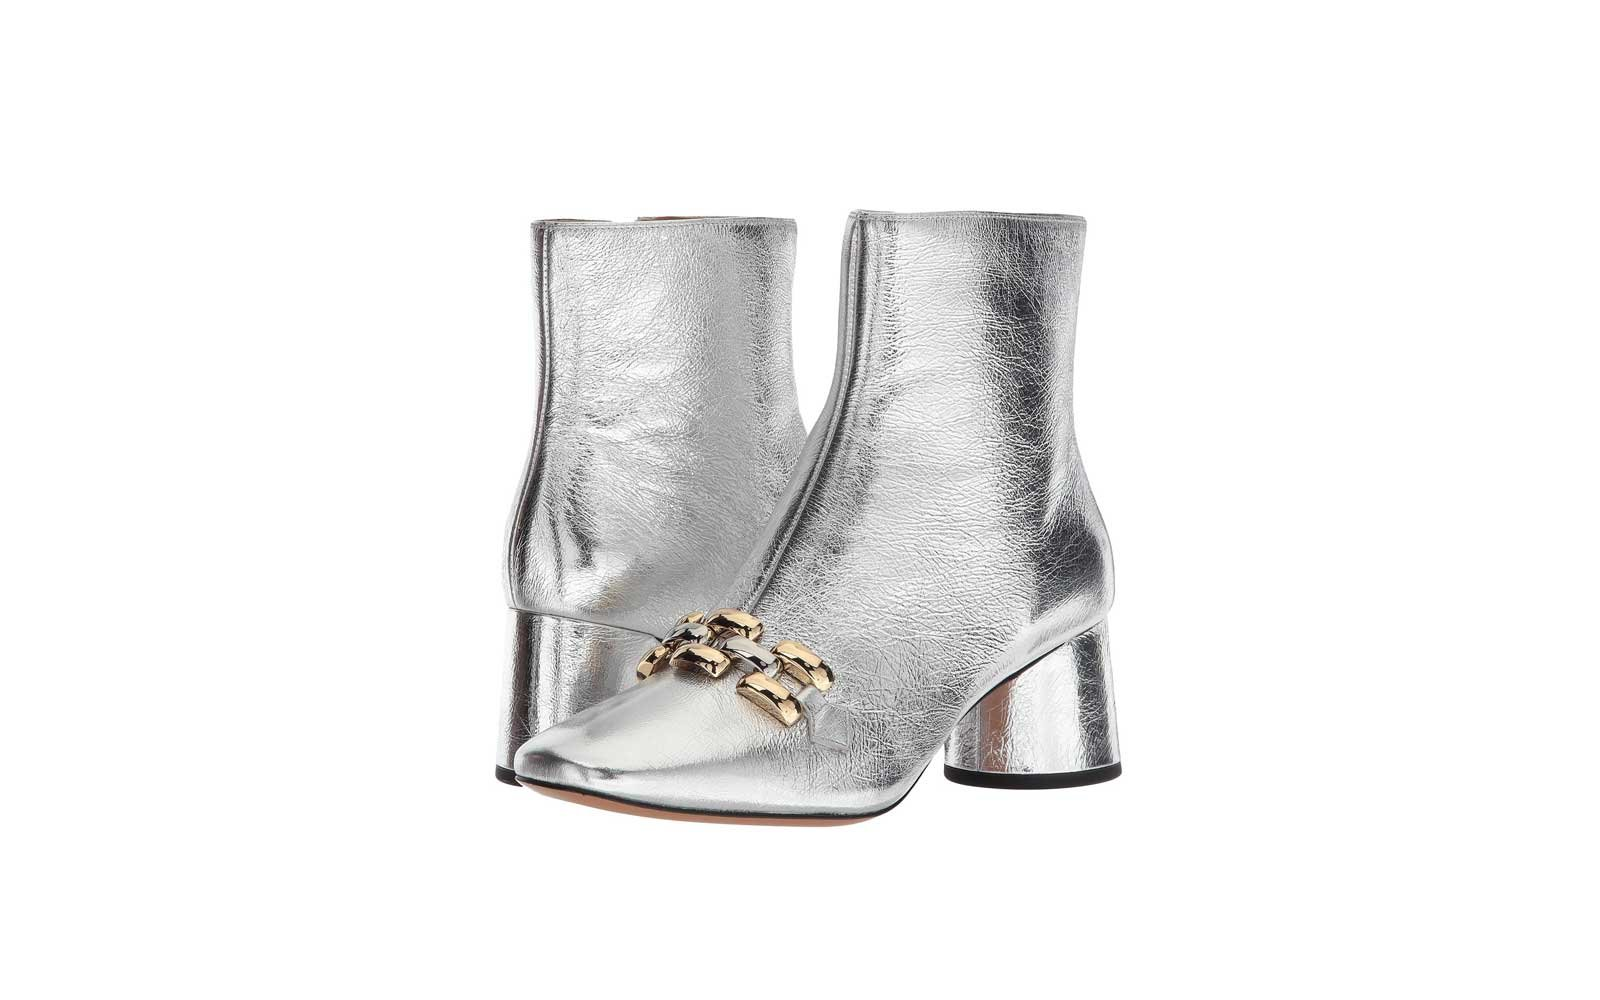 Marc Jacobs Remi Chain Link Ankle Boot in Silver